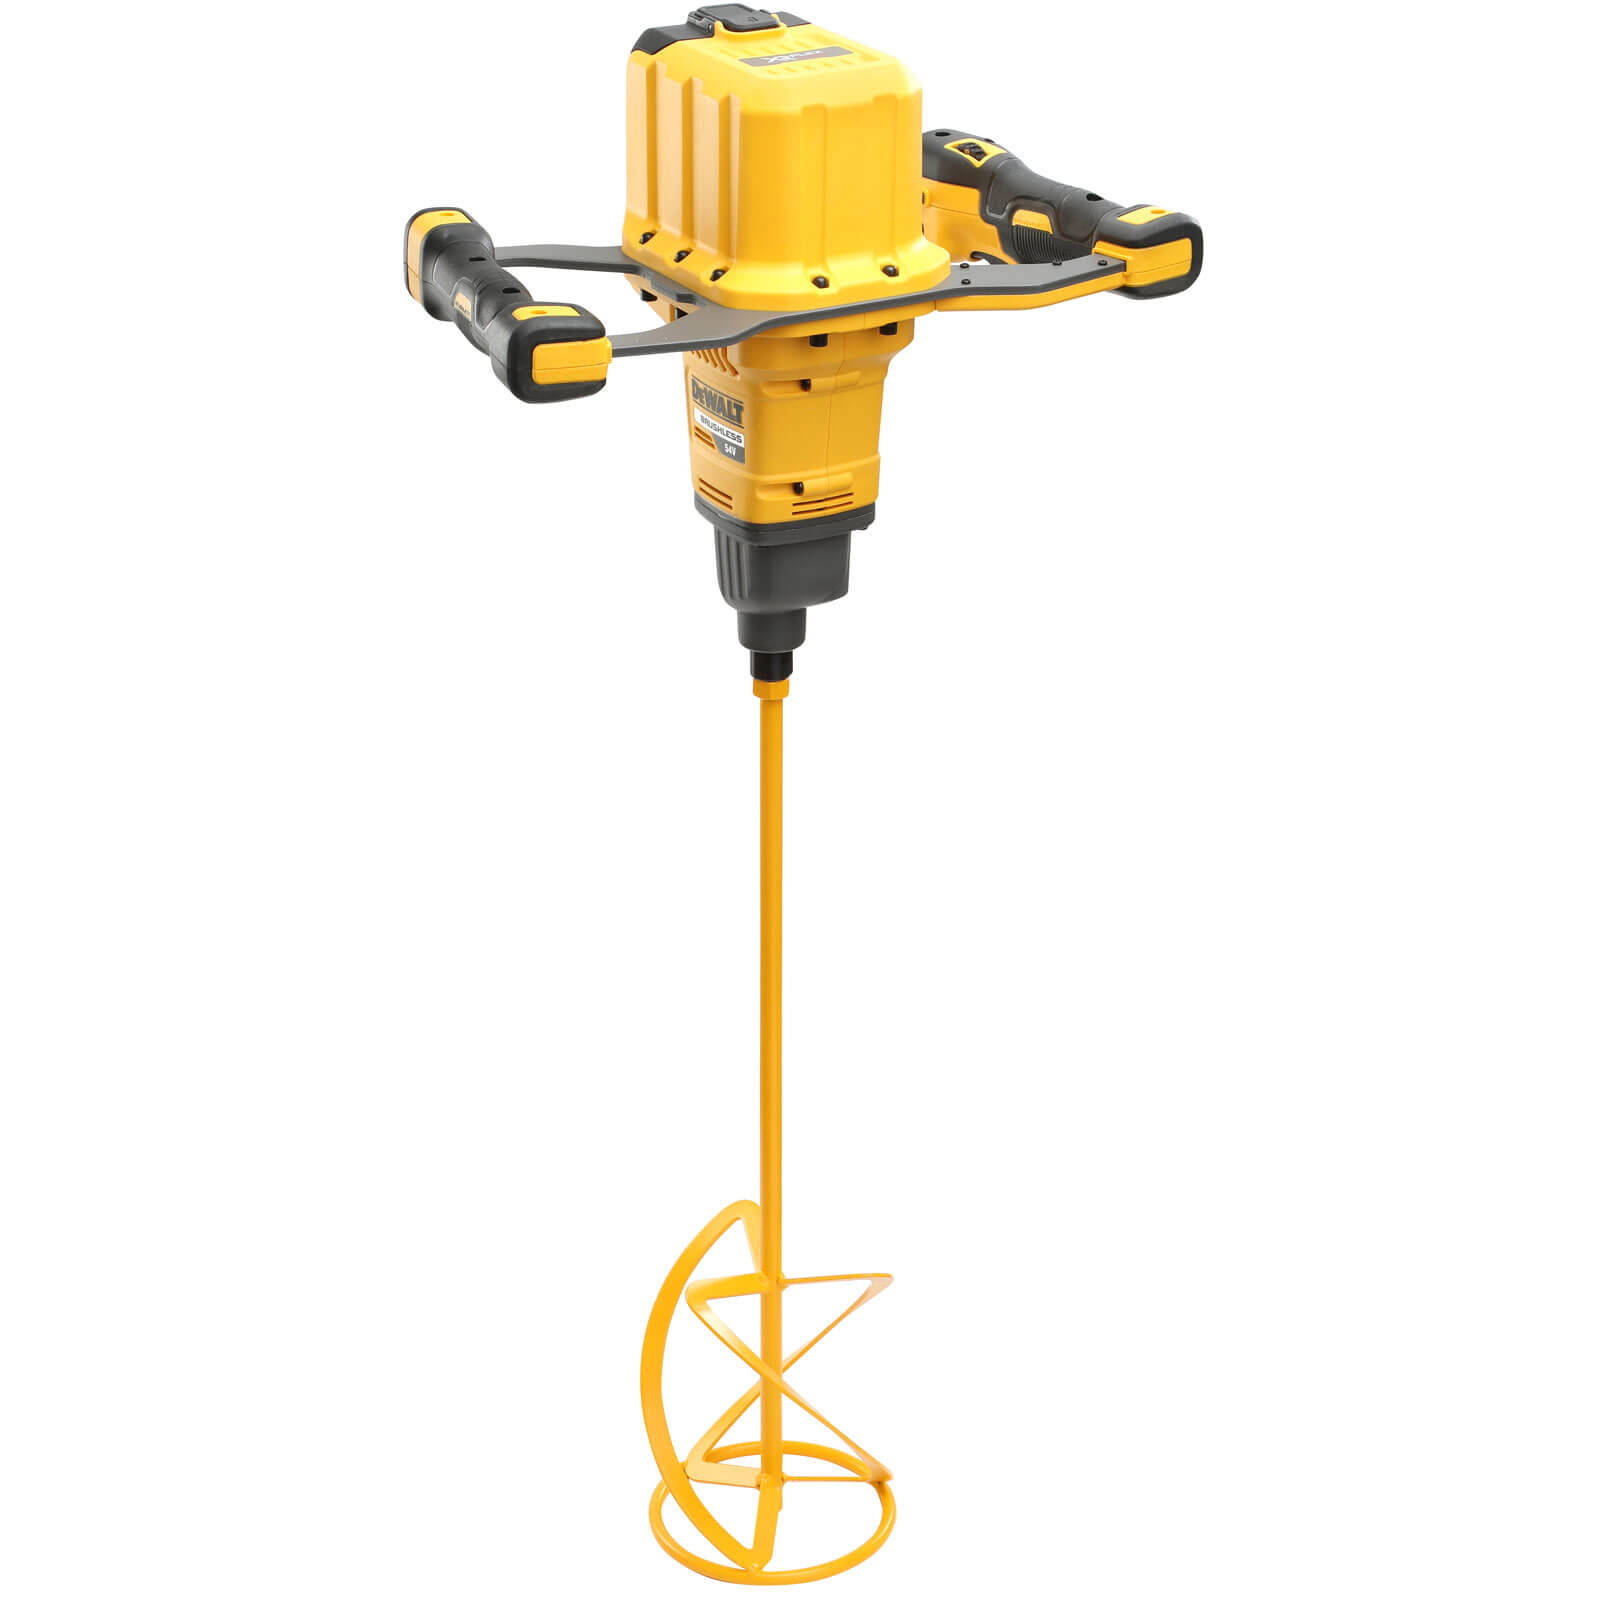 Image of DeWalt DCD240 54v Cordless XR FLEXVOLT Paddle Mixer No Batteries No Charger No Case